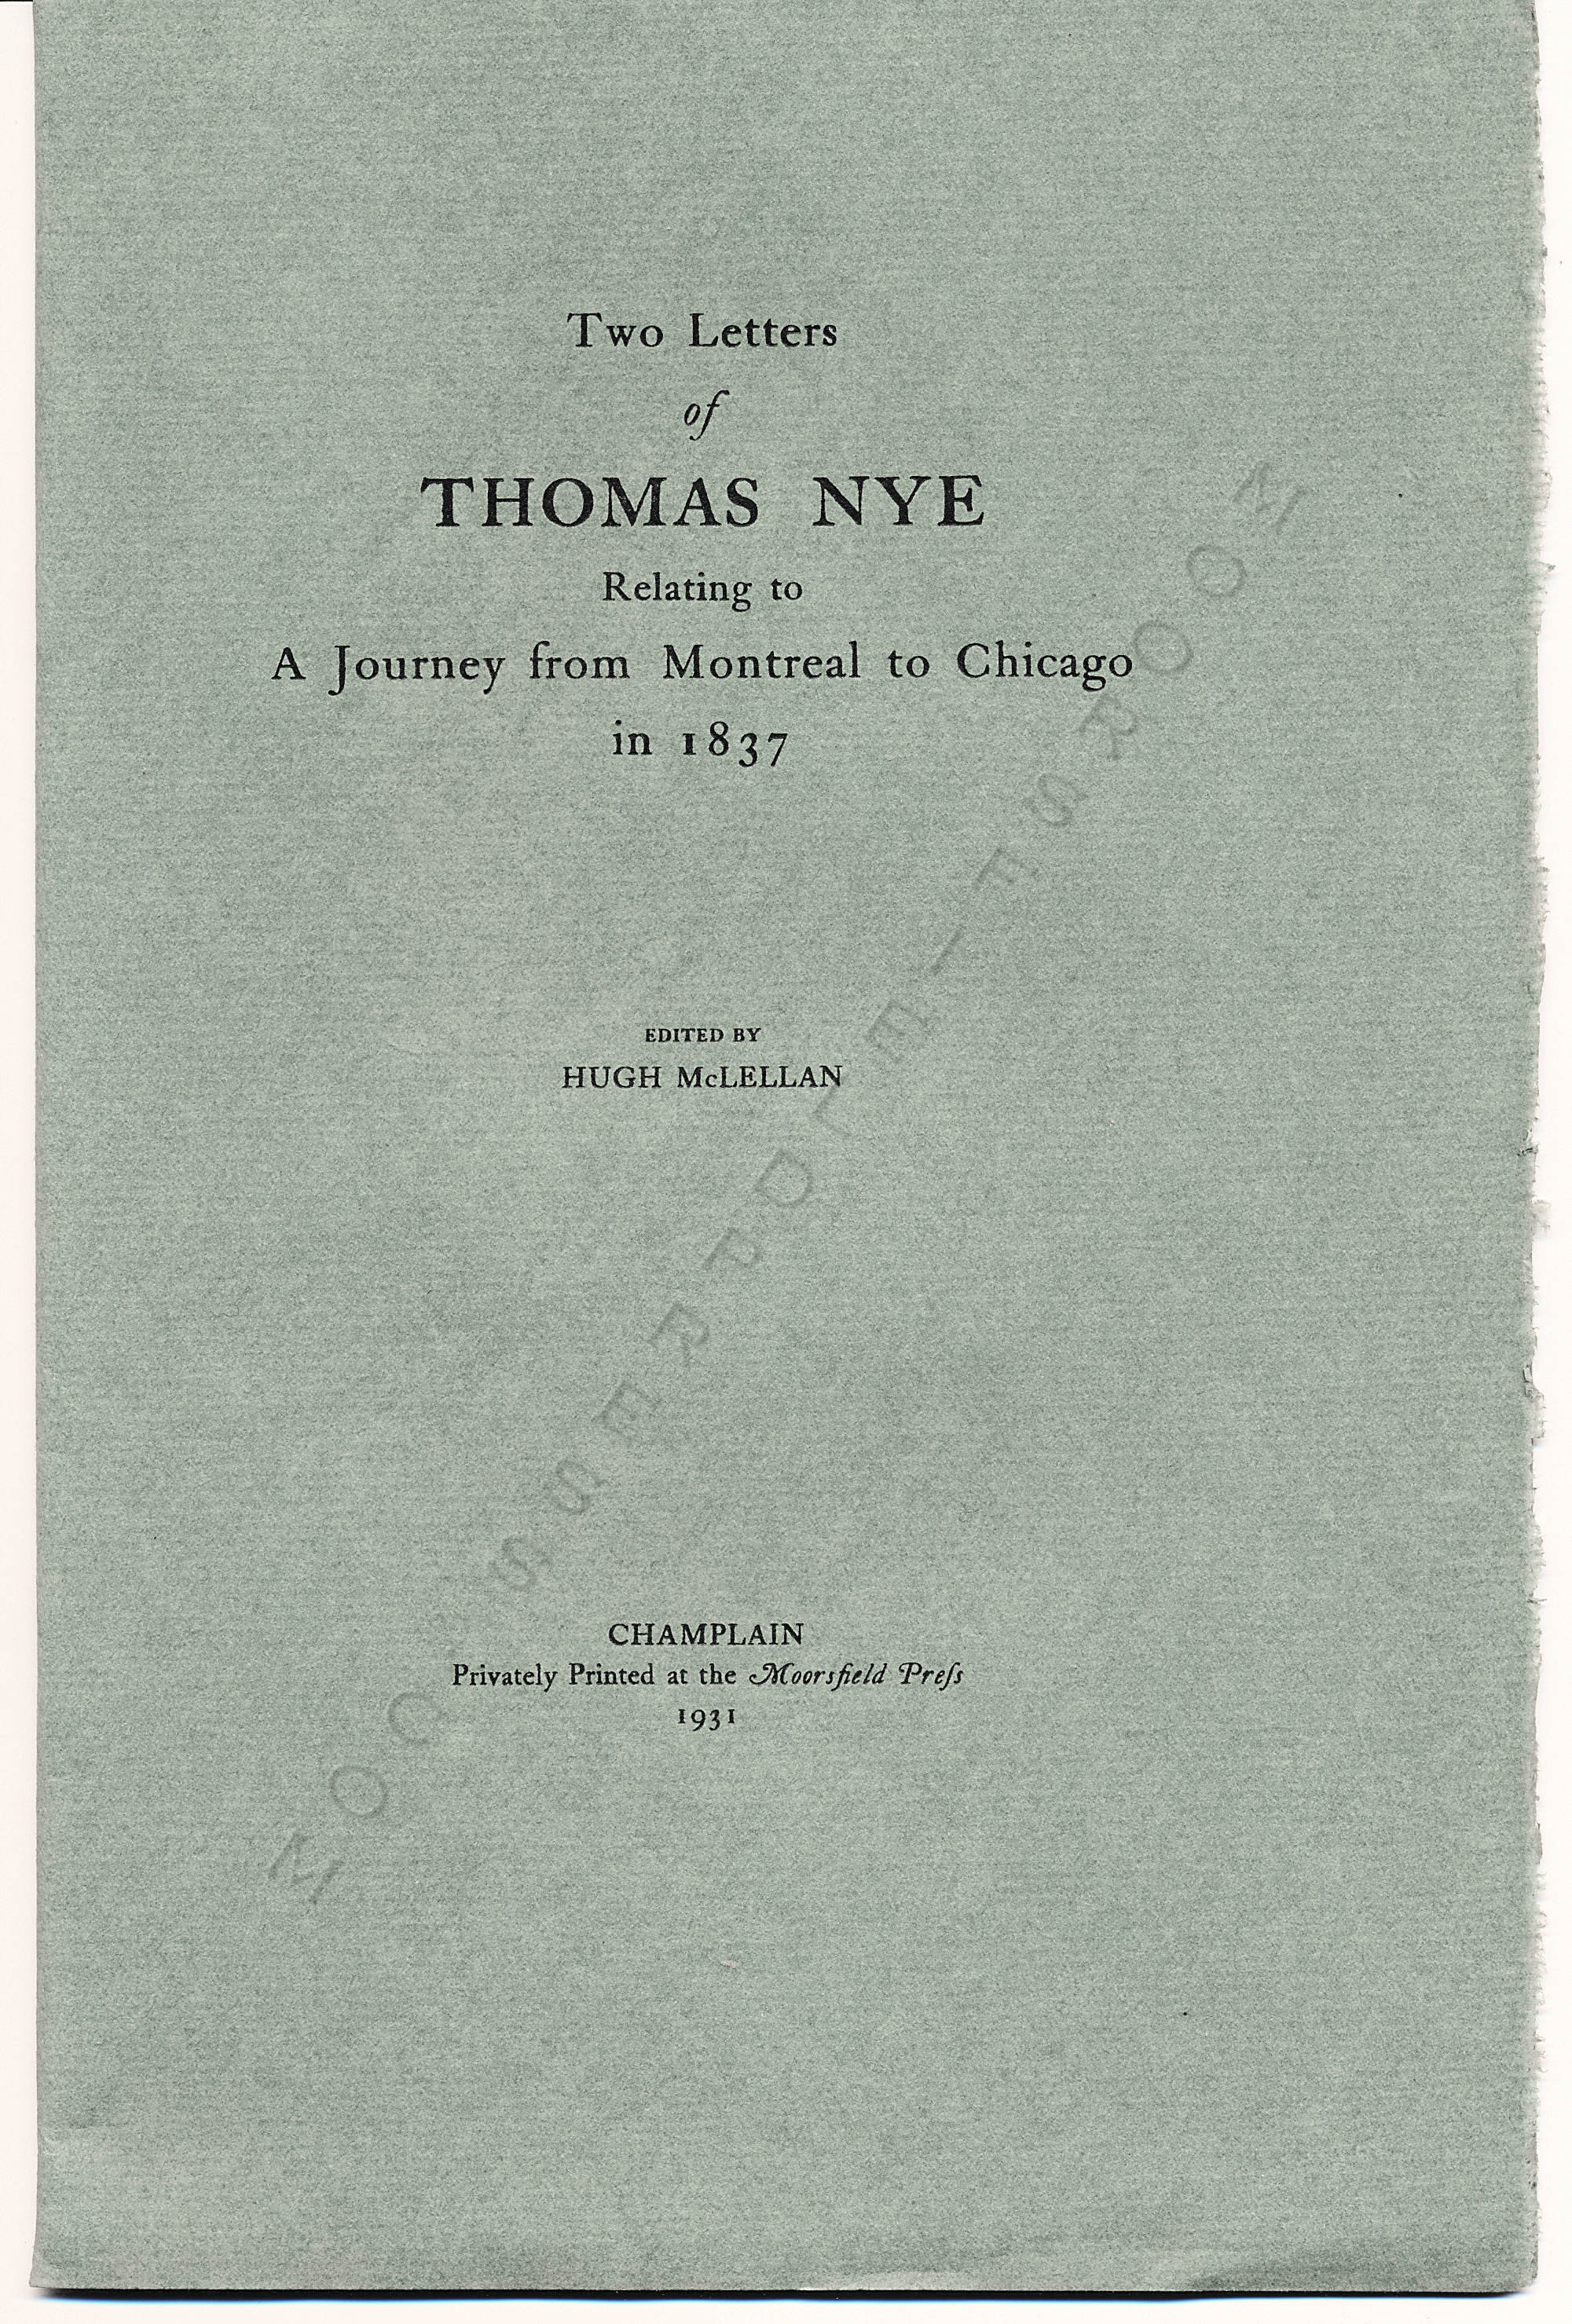 moorsfield press publication-two